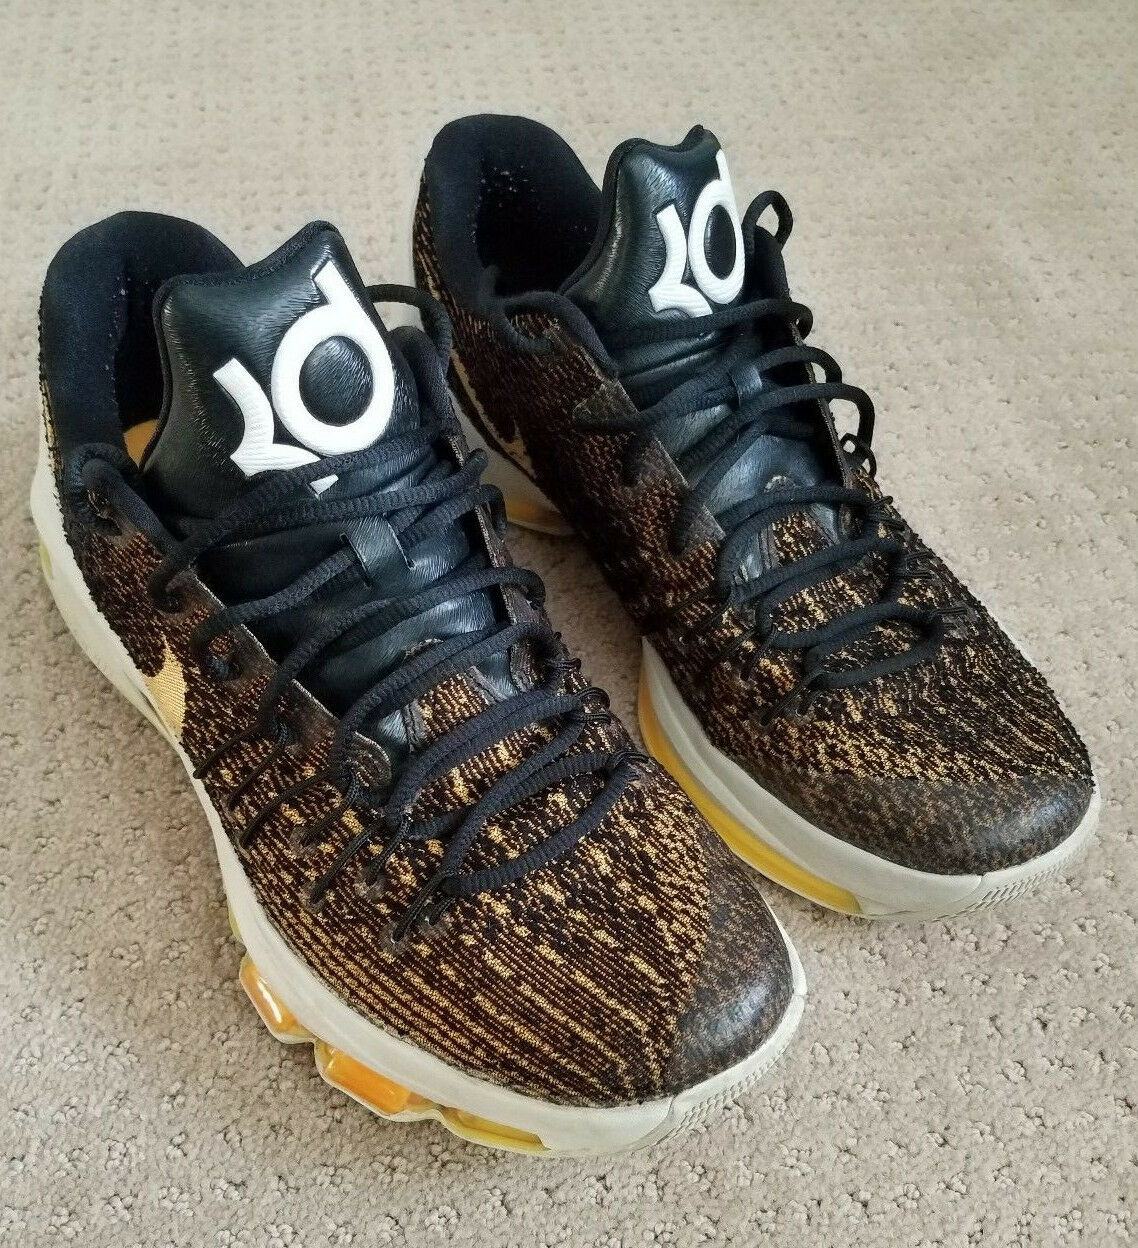 Nike Air Zoom KD Kevin Durant Basket Ball shoes Woven Uppers gold BLACK US 11